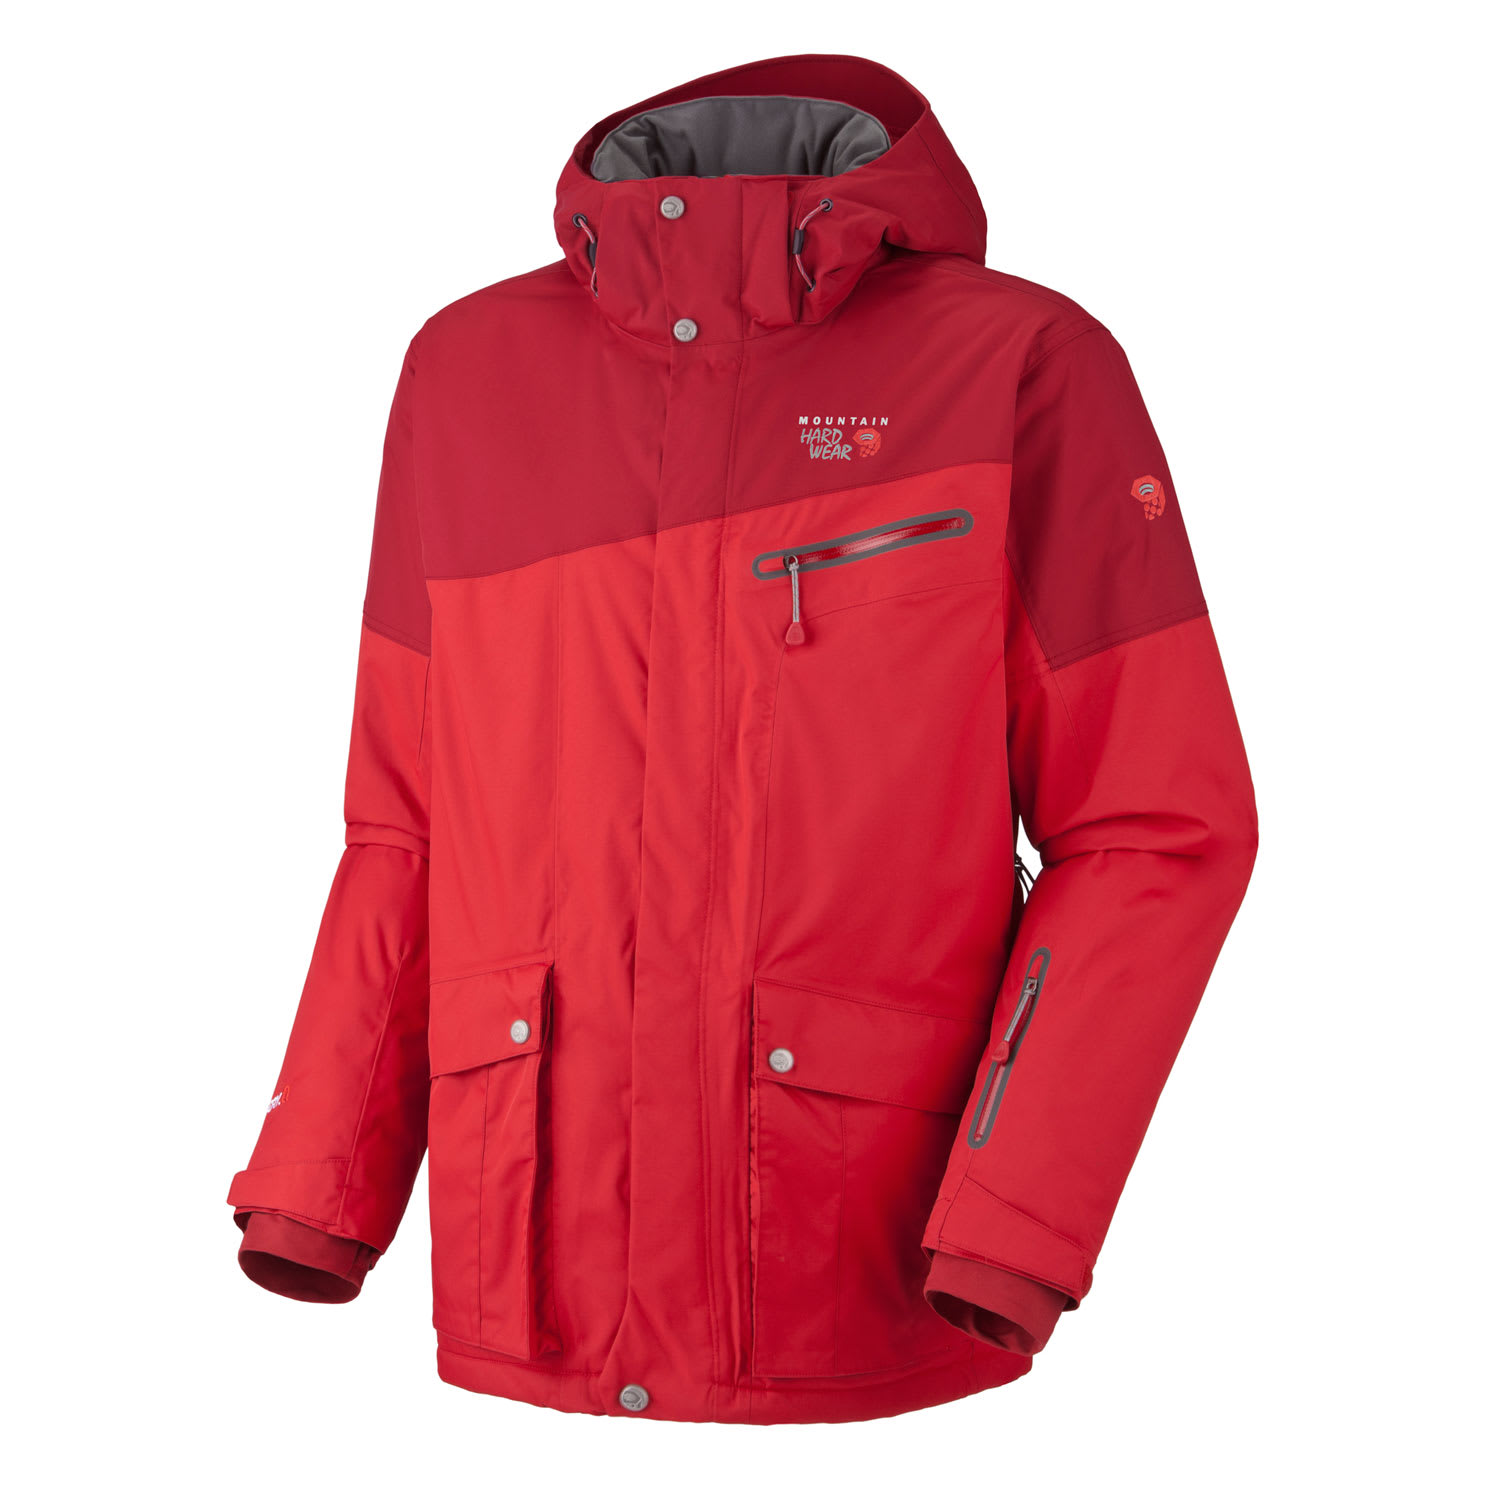 Shop for Mountain Hardwear Automator Ski Jacket Red/Thunderbird Red - Men's